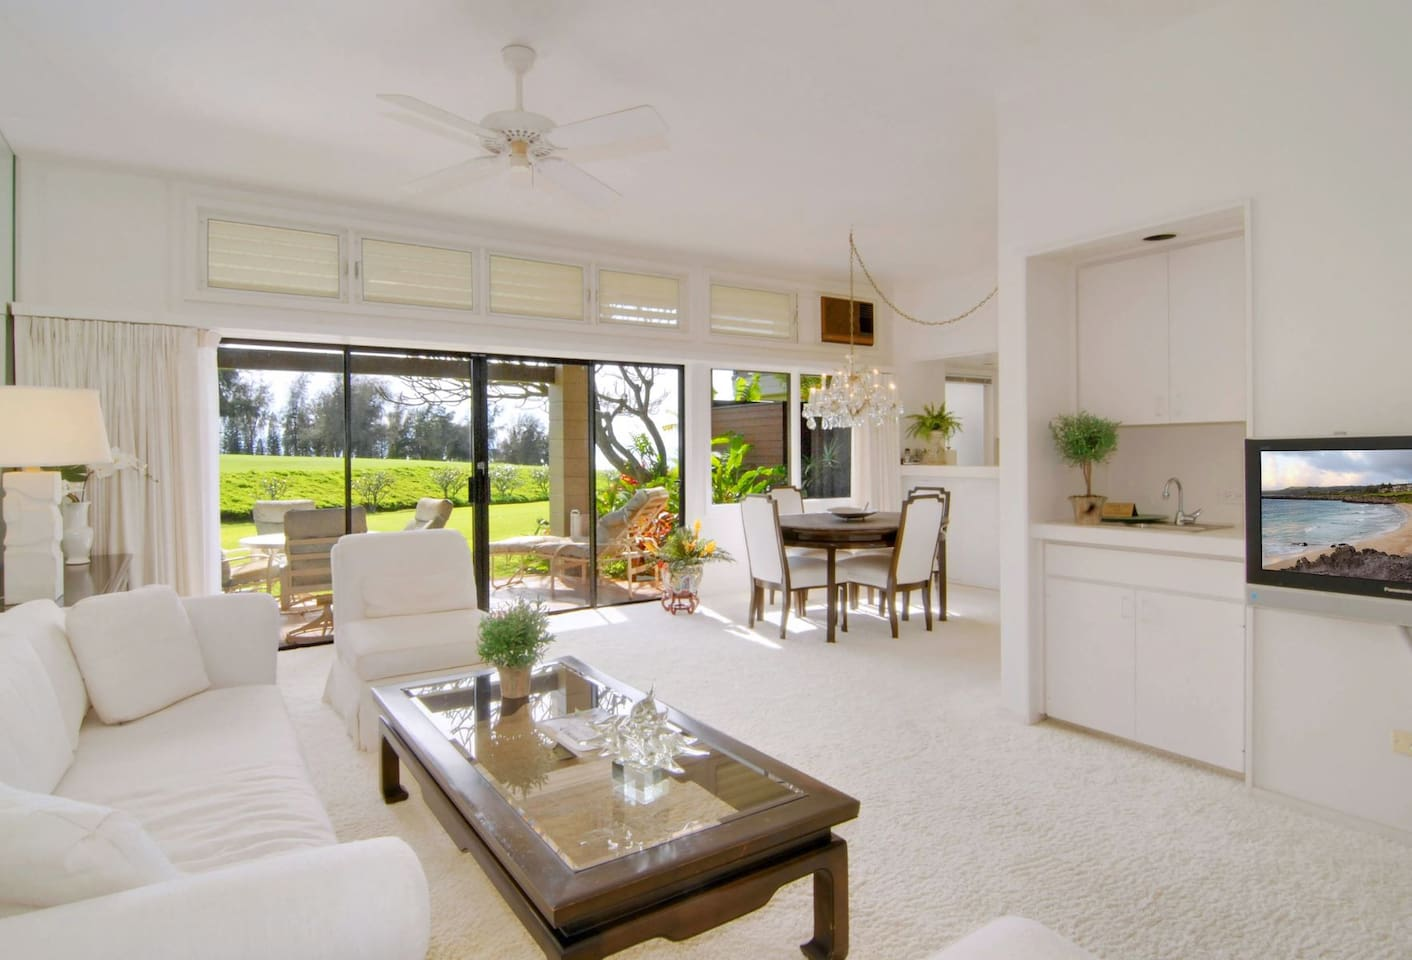 Peace and quiet are yours in this serene fairway villa